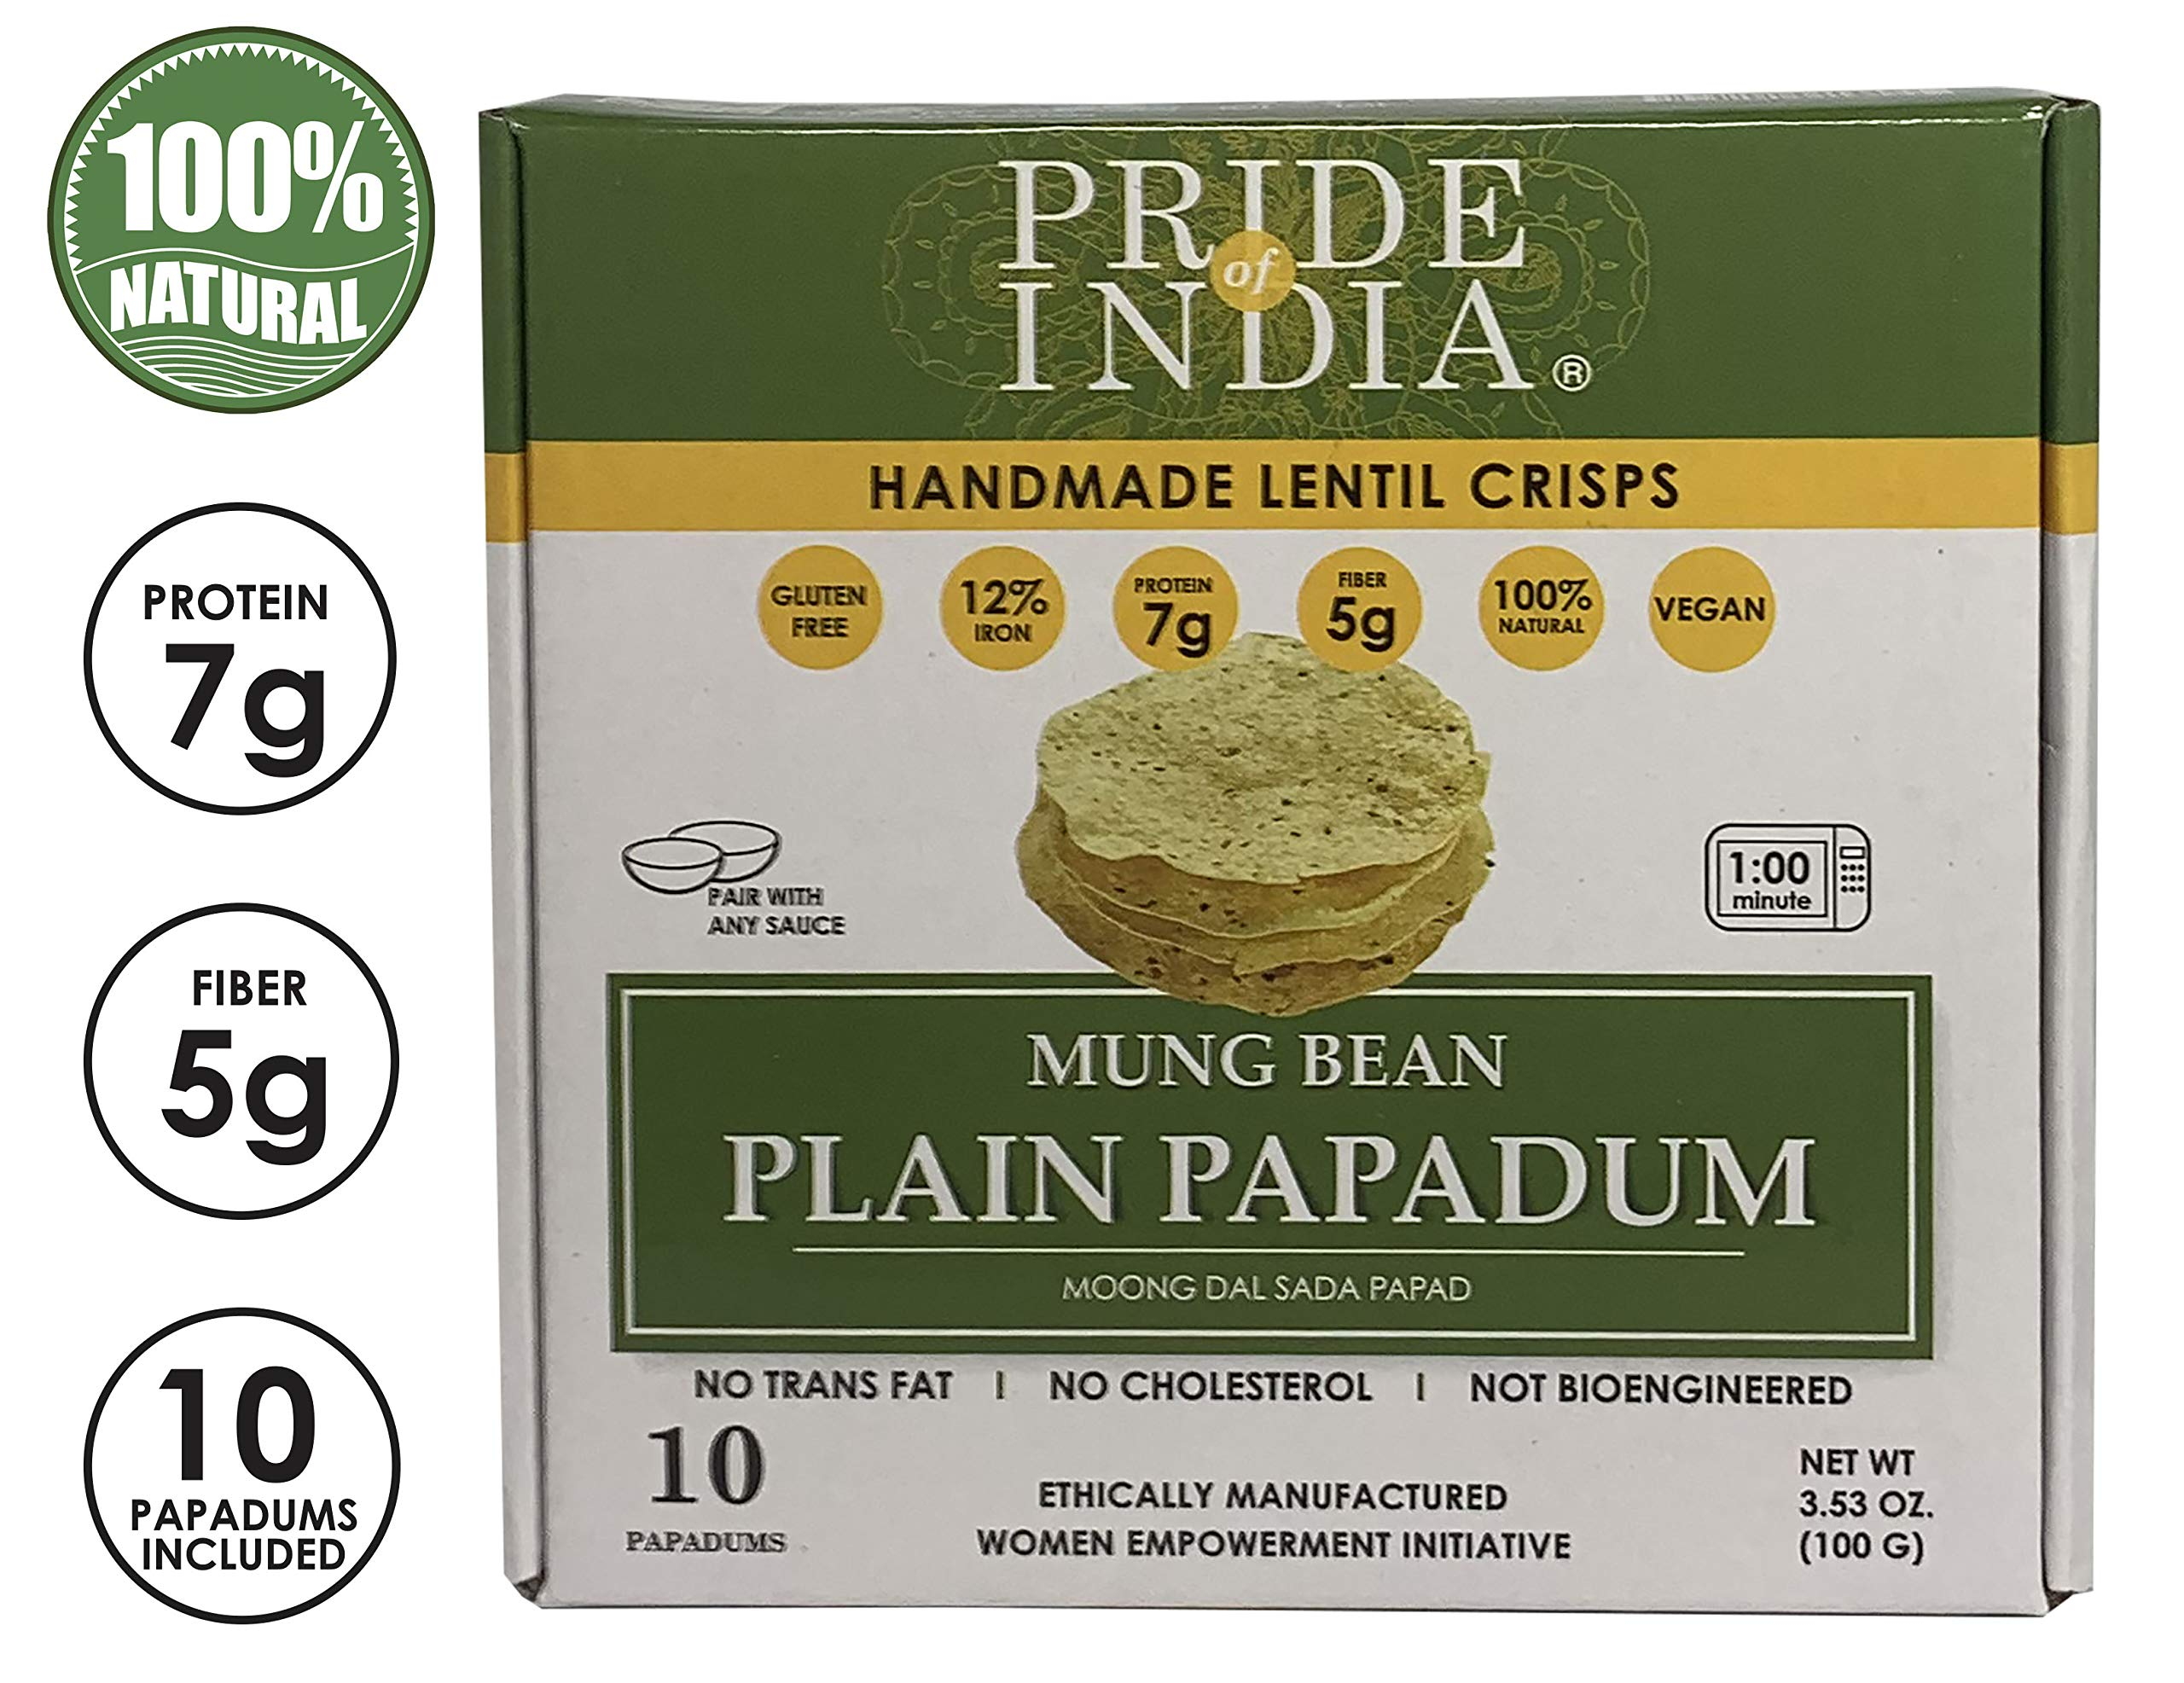 Pride Of India - Mung Bean Plain Papadum Lentil Crisp, Pack of 6-10 count (3.53oz - 100gm) - Protein Fiber & Iron Rich, Gluten-Free Vegan Lentil Crackers, Healthy Indian Appetizer, Ready in Seconds by Pride Of India